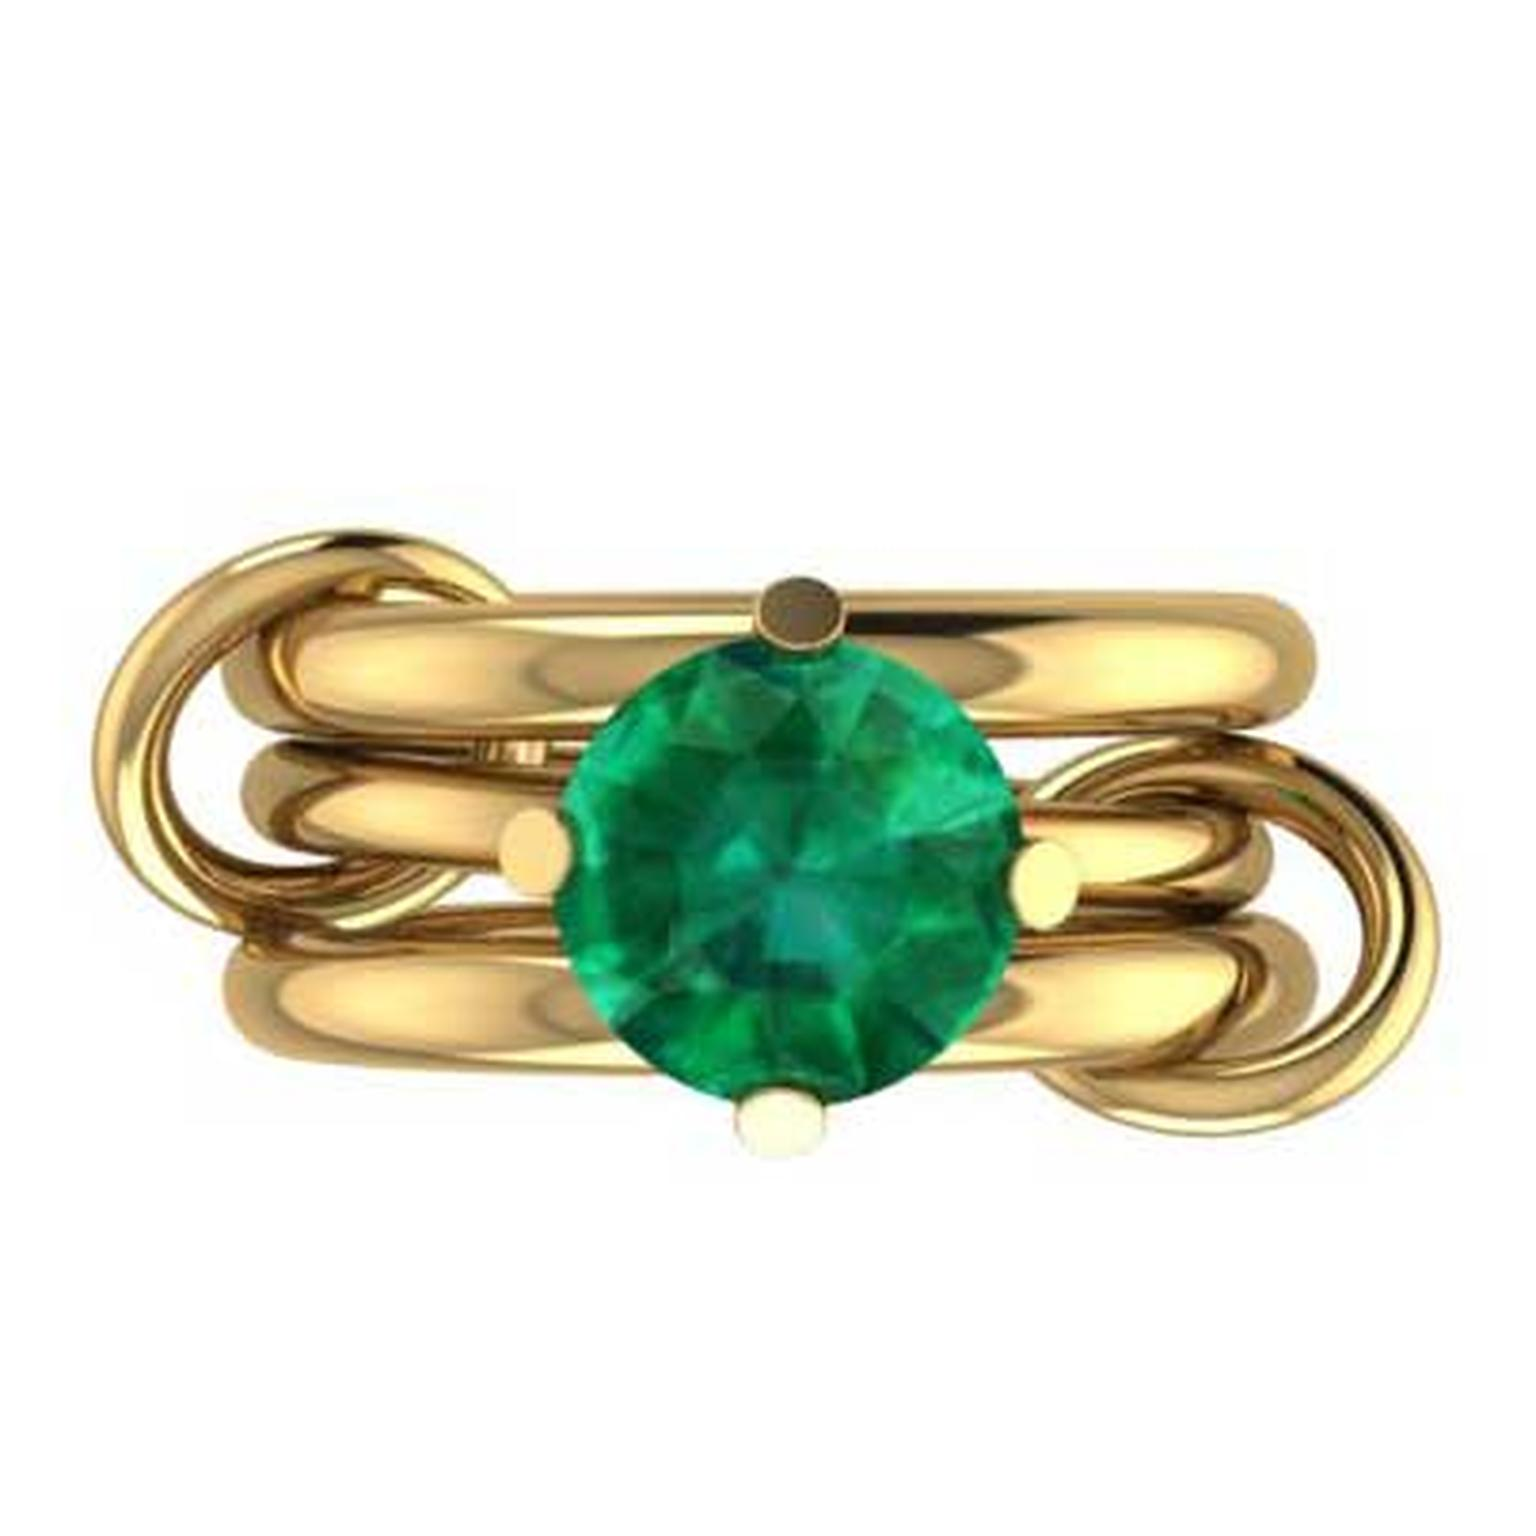 Enchanting emeralds: the birthstone of May babies